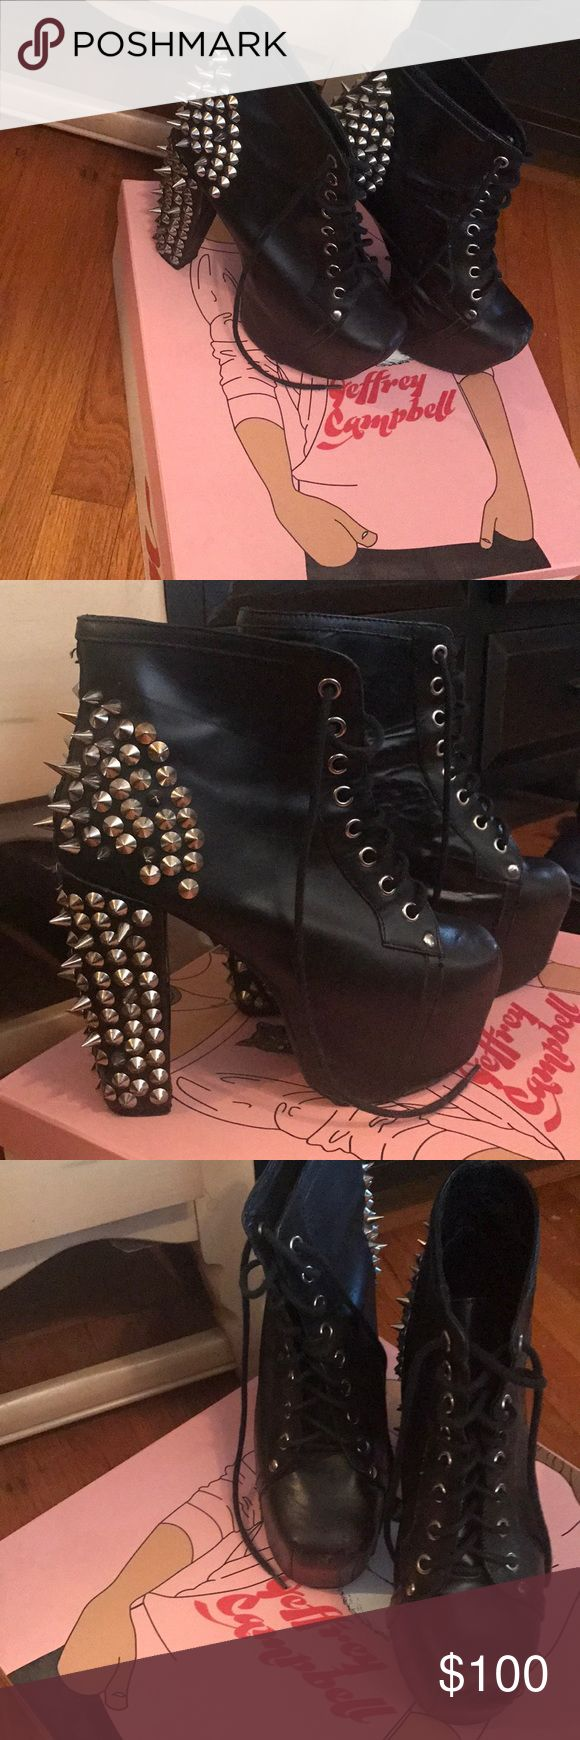 Jeffery Campbell Lita Spiked Heels! Jeffery Campbell black and silver high spiked heels!! Worn a handful of times, some scuffing on the toes (leather cleaner would make them look great) some spikes missing but comes with extra spikes to fix!! Also comes with box! Jeffrey Campbell Shoes Heels